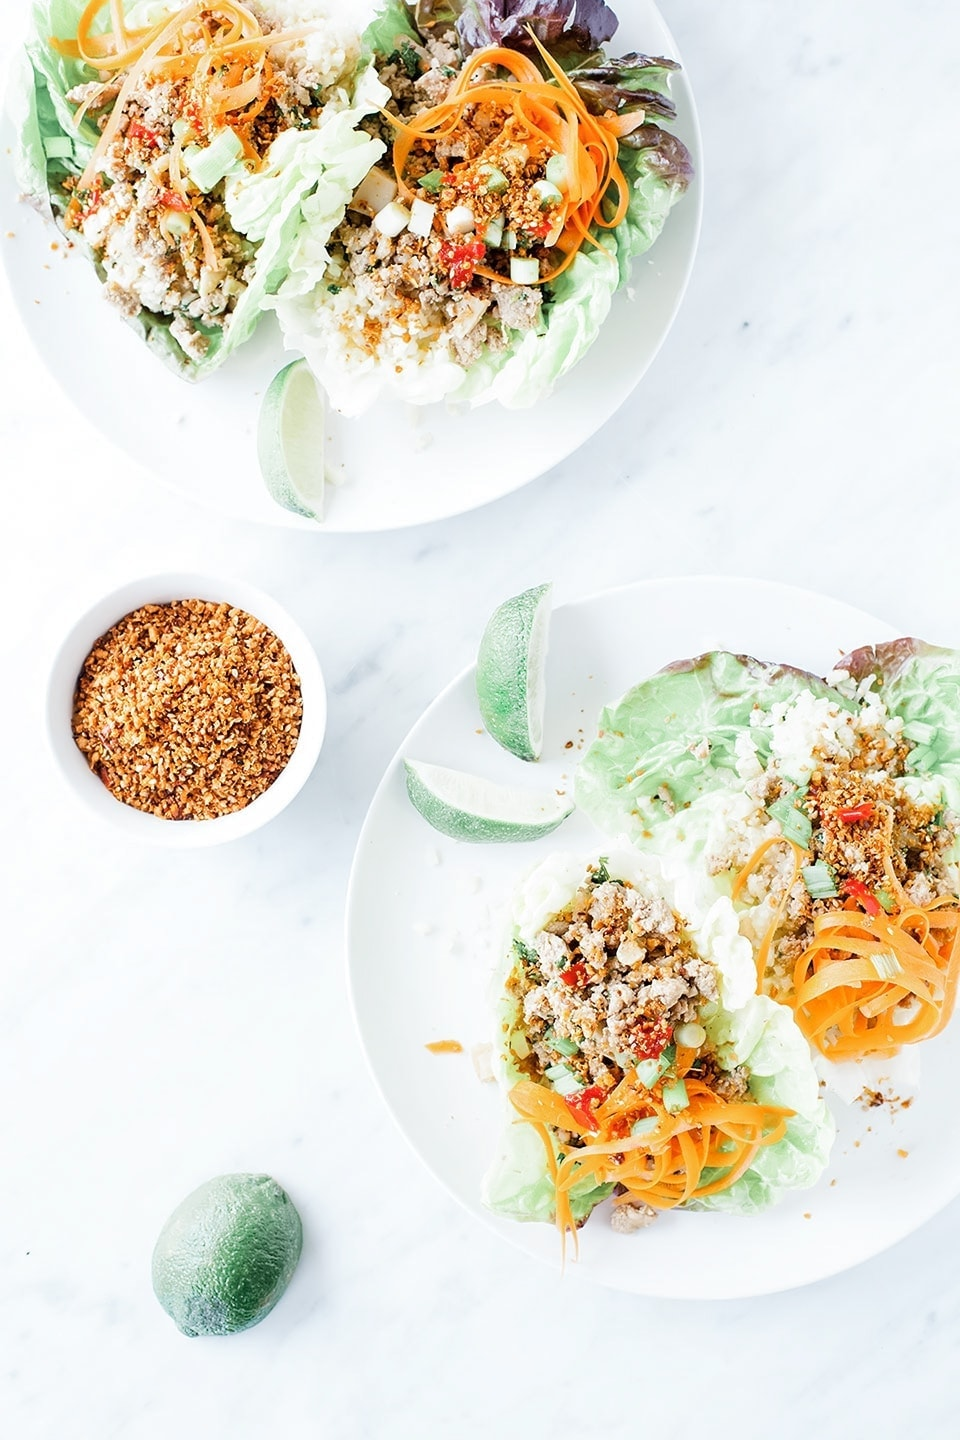 Chicken Lettuce Wraps with Coconut Cauliflower Rice | Gluten-free and low-carb. | Loveleaf Co. | Healthy Eating Made Simple